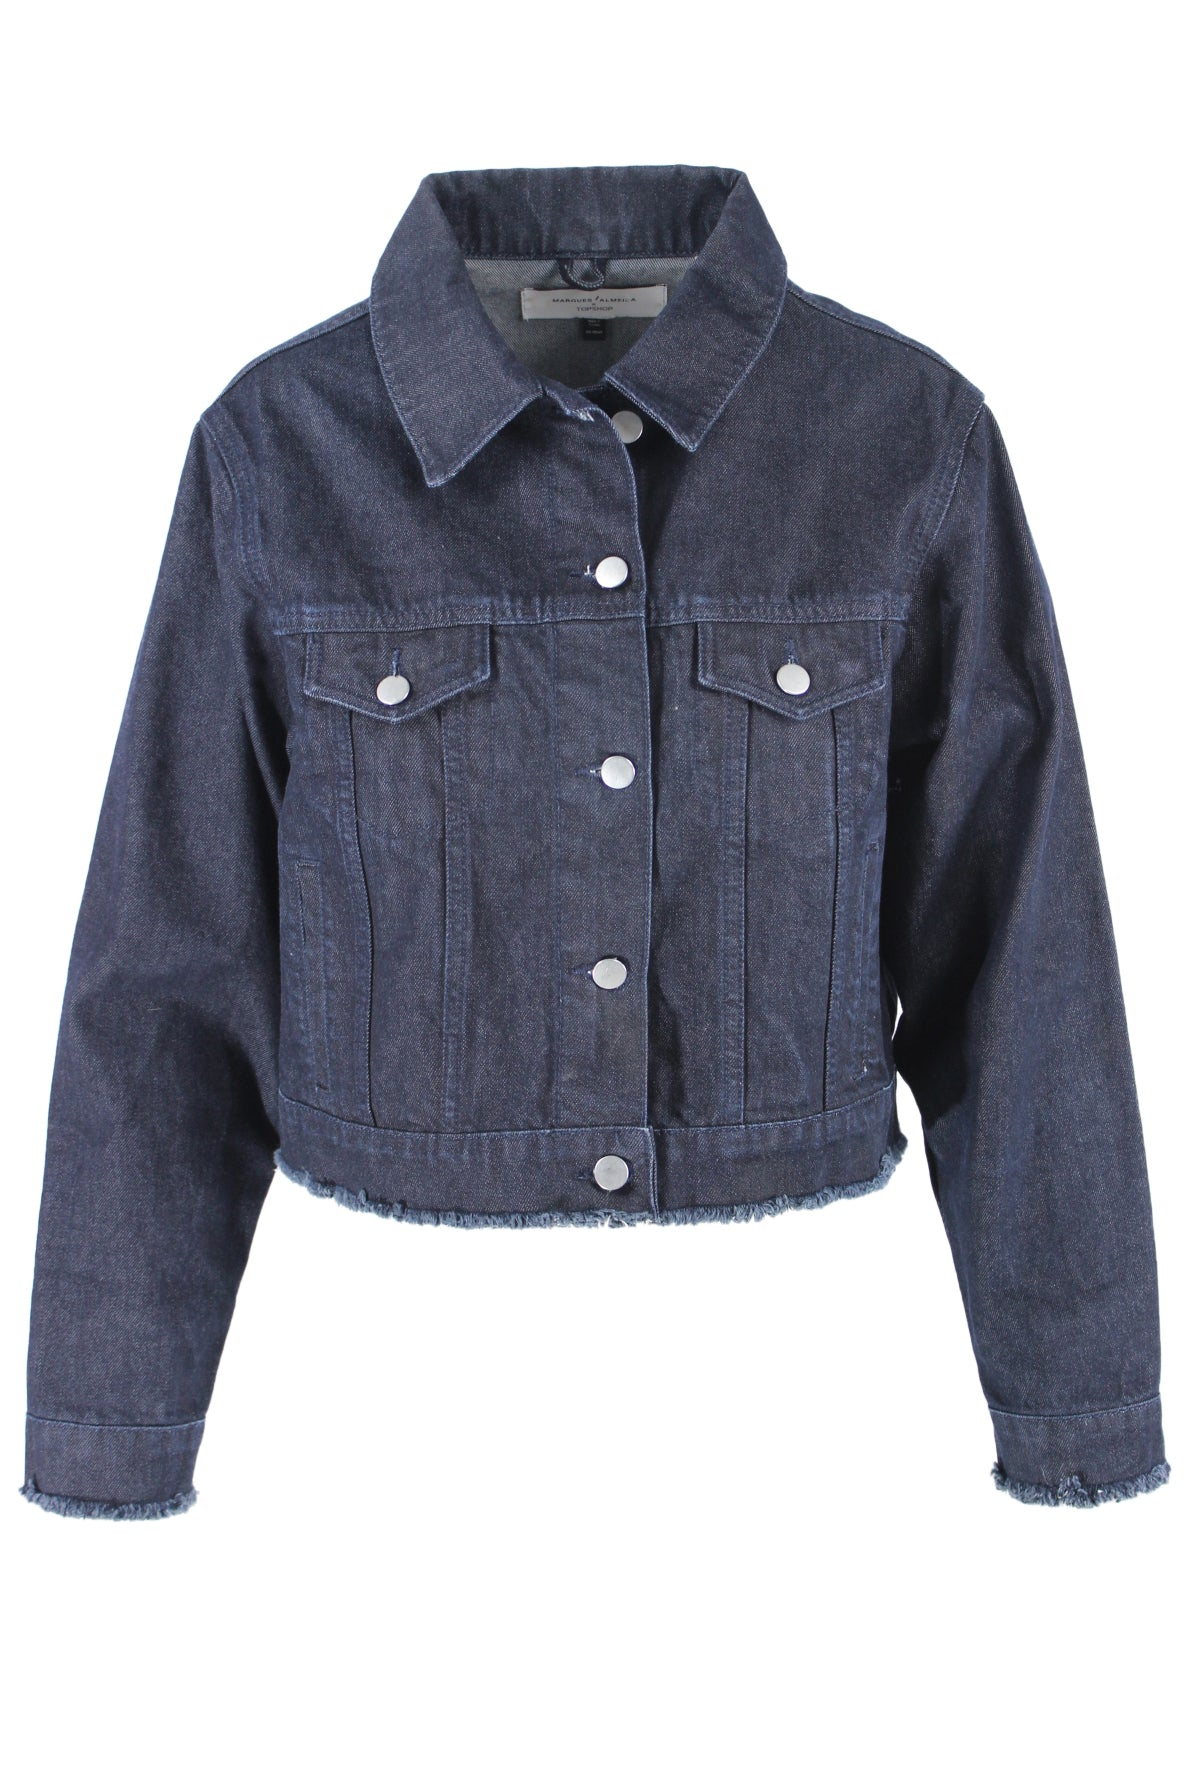 topshop x marques almeida dark wash cropped denim trucker jacket. featuring brushed silver hardware, button down closure, 4 pockets, raw bottom hem, adjustable waist tabs, and boxy silhouette.